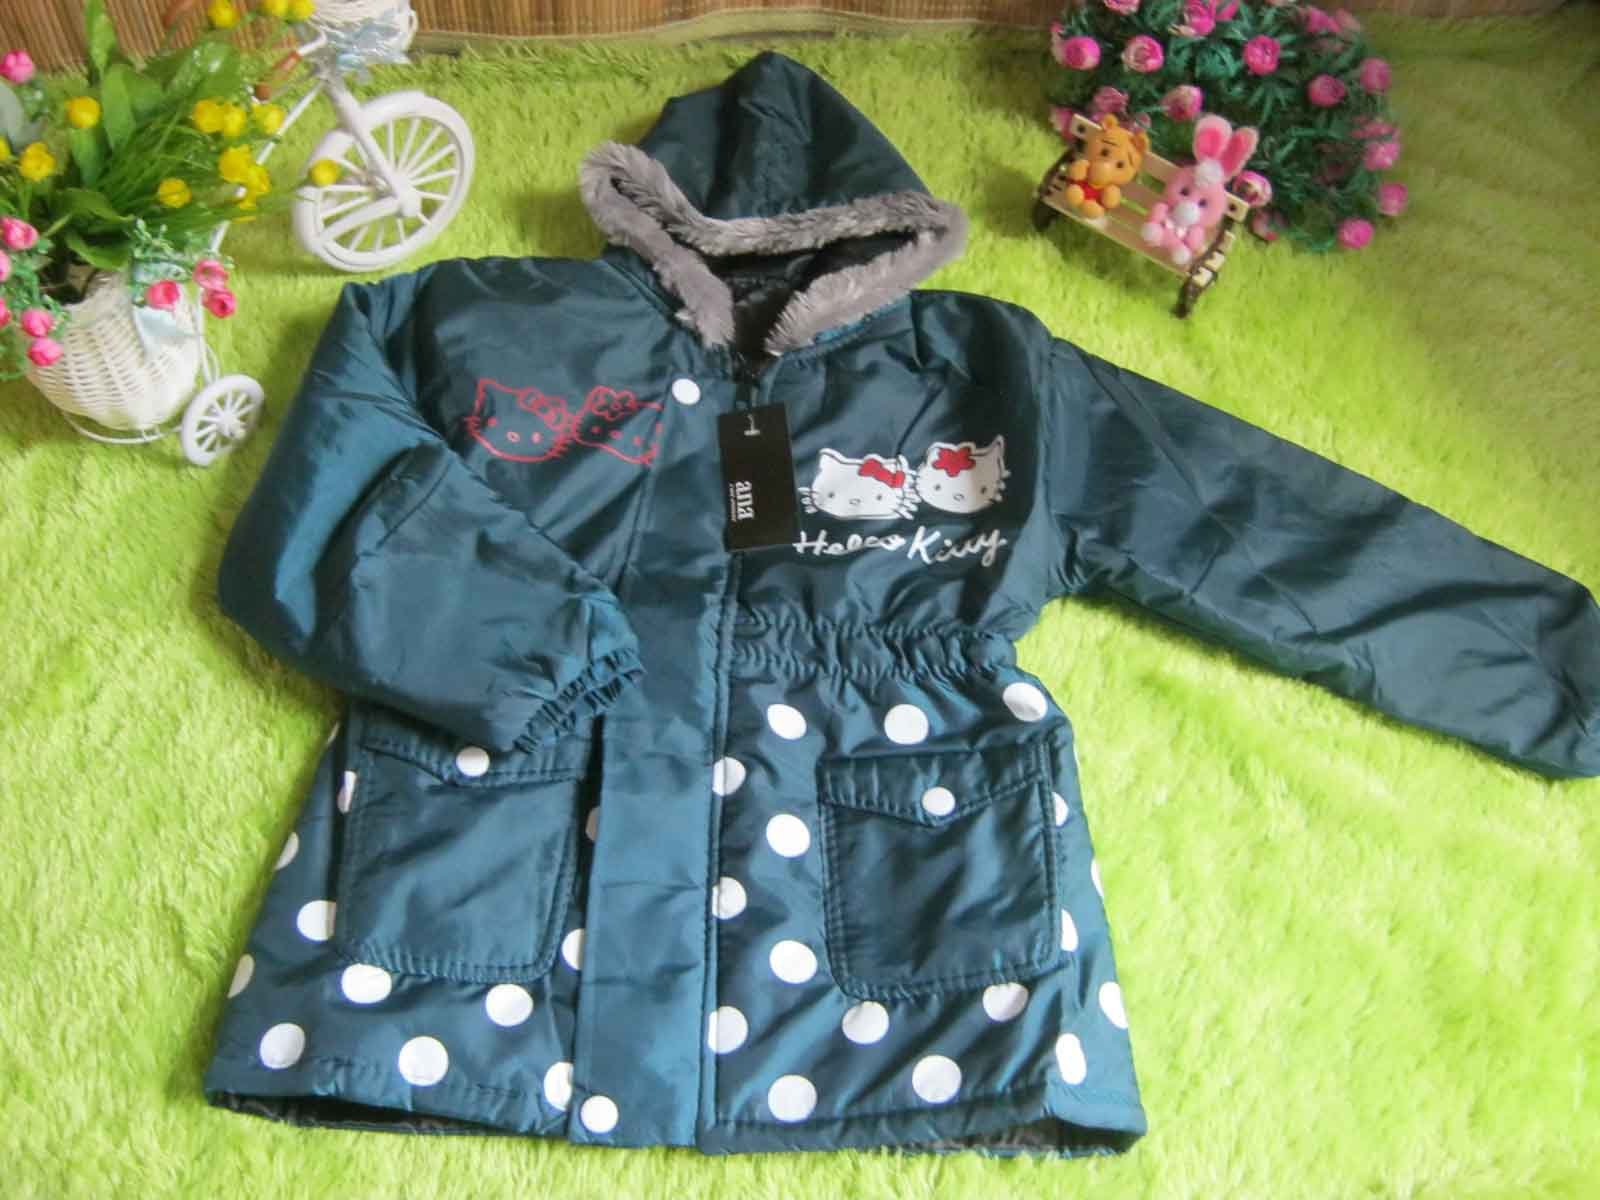 Jaket Anak Batita Anti Air Waterproof Hello Kitty Hijau Tosca 50 muat untuk usia 2-3th